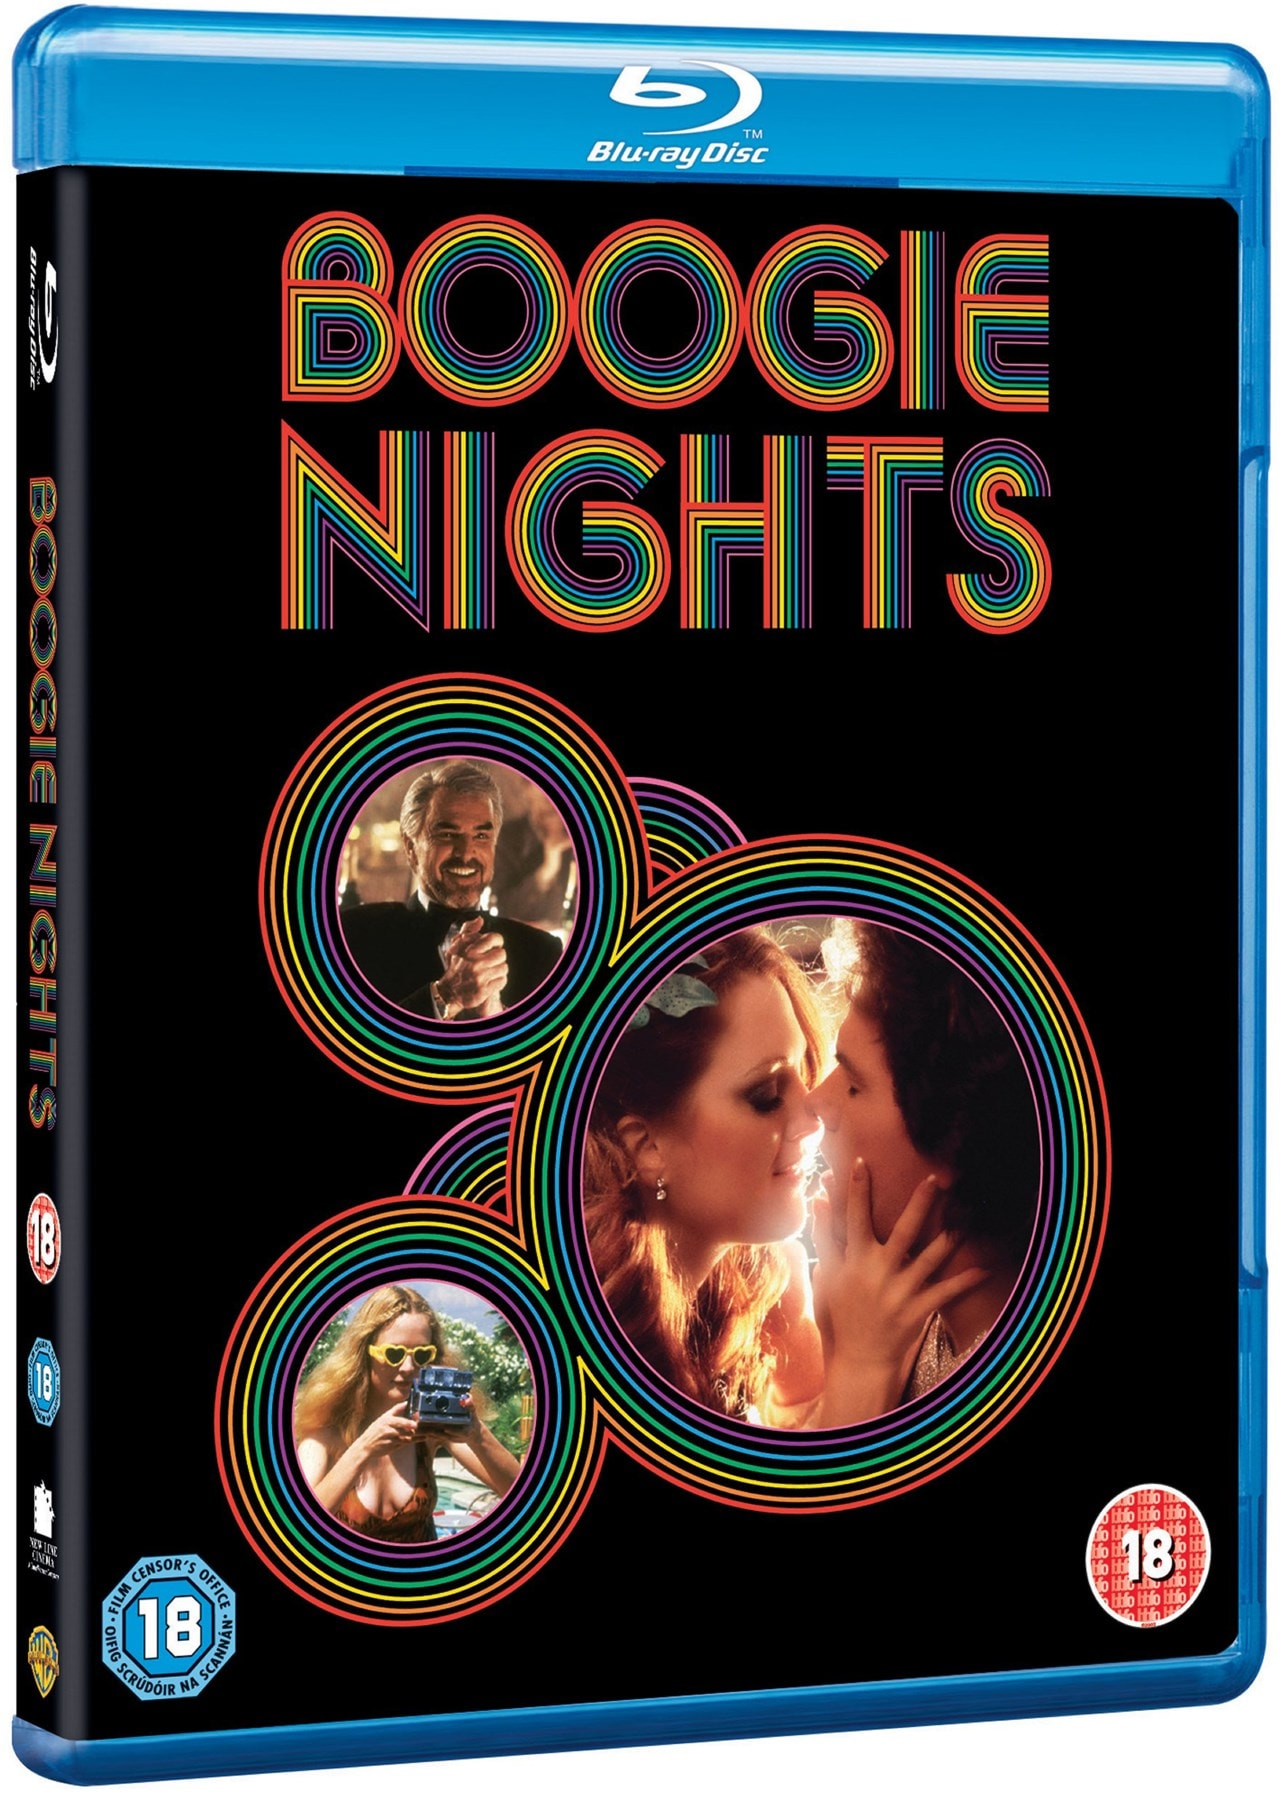 Boogie Nights - 2